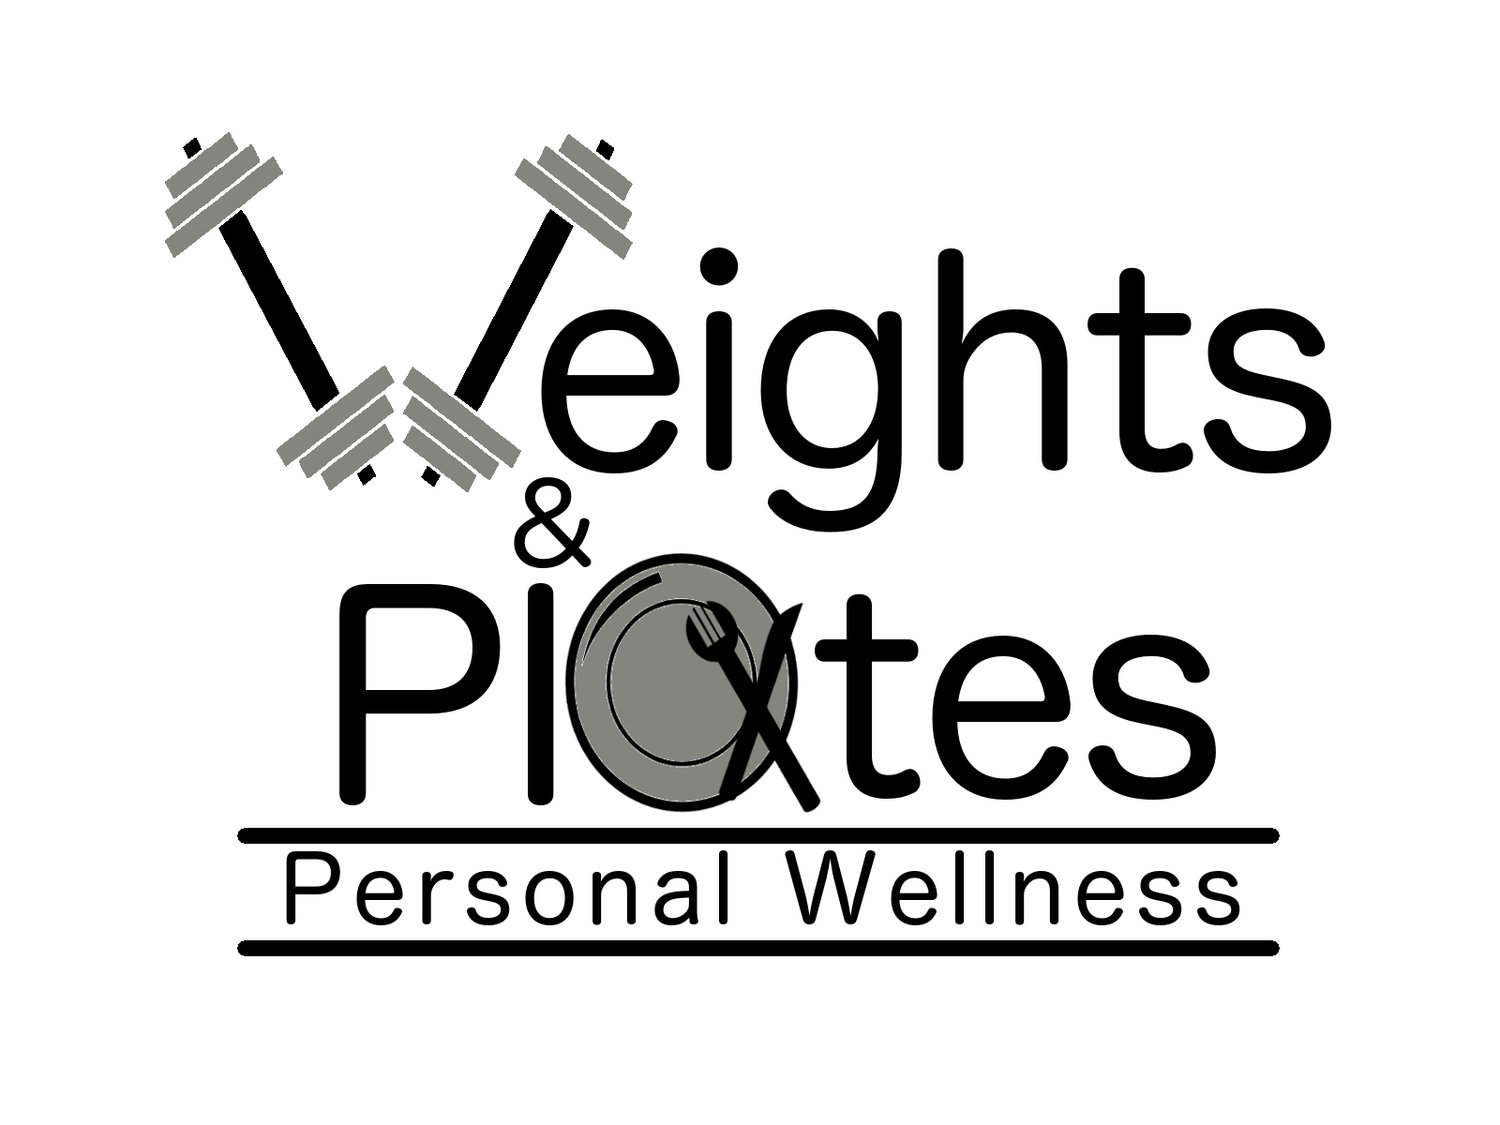 Weights & Plates / Personal Wellness